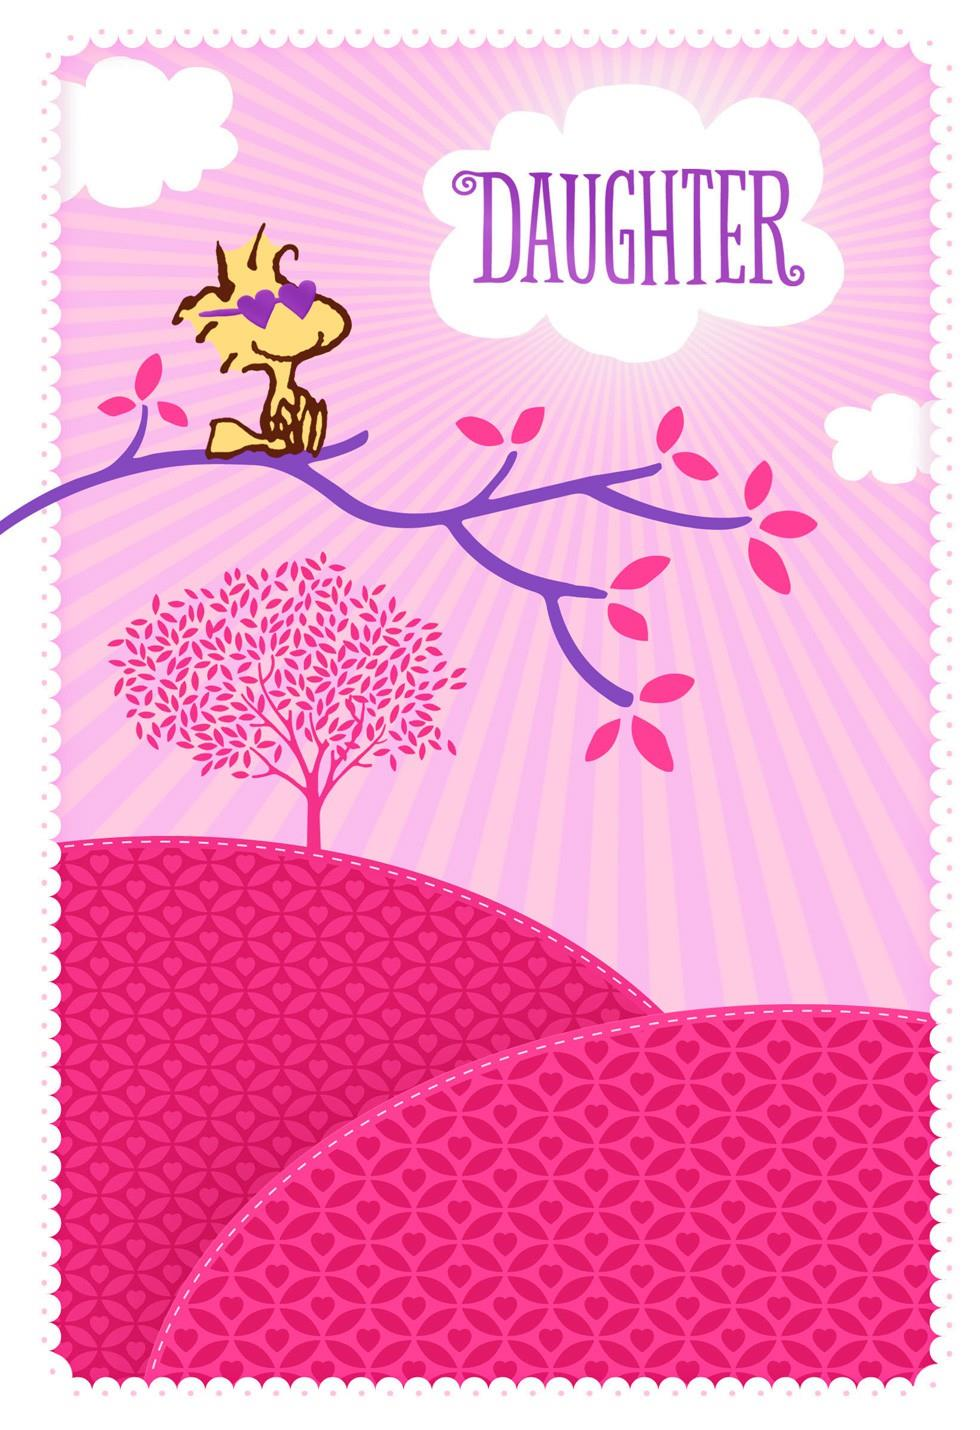 peanuts woodstock sunny daughter valentines day card - Valentines Day Daughter